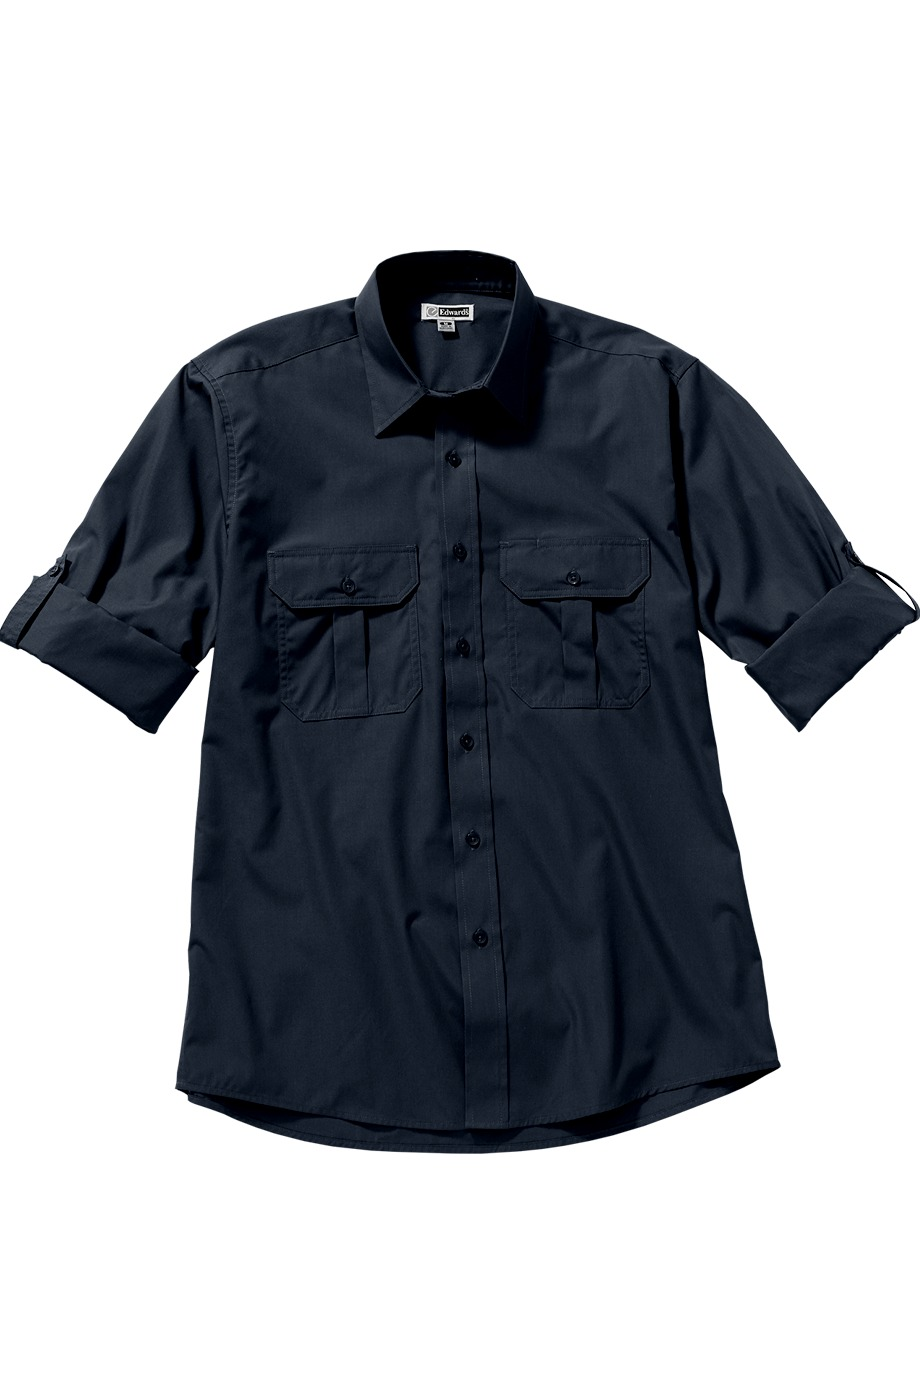 Edwards Garment 1288 - Roll Up Long Sleeve Shirt